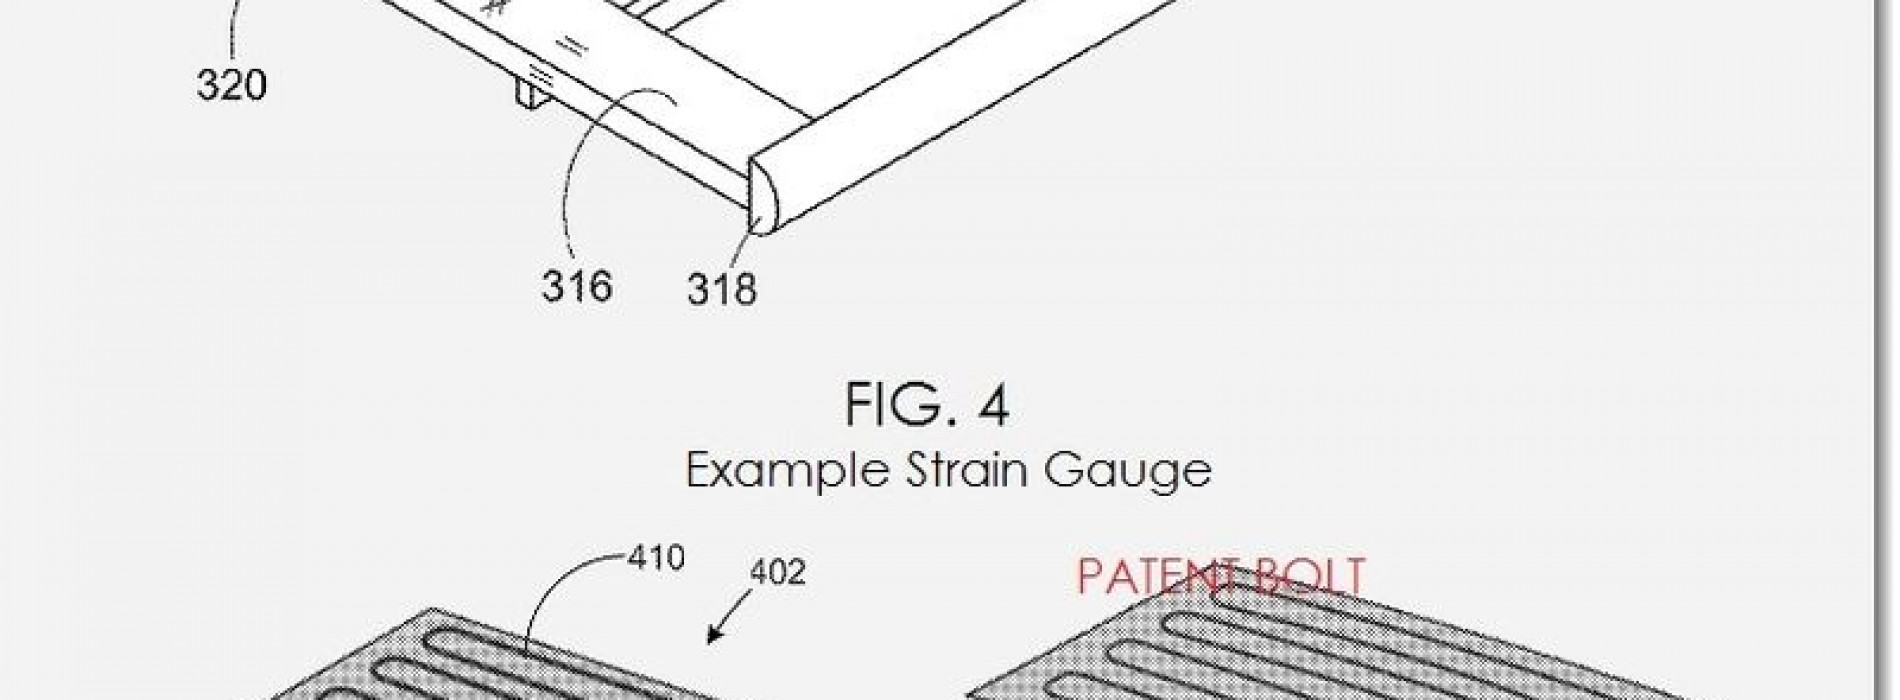 Google patents tip shearing, sliding, and squeezing for future smartphones